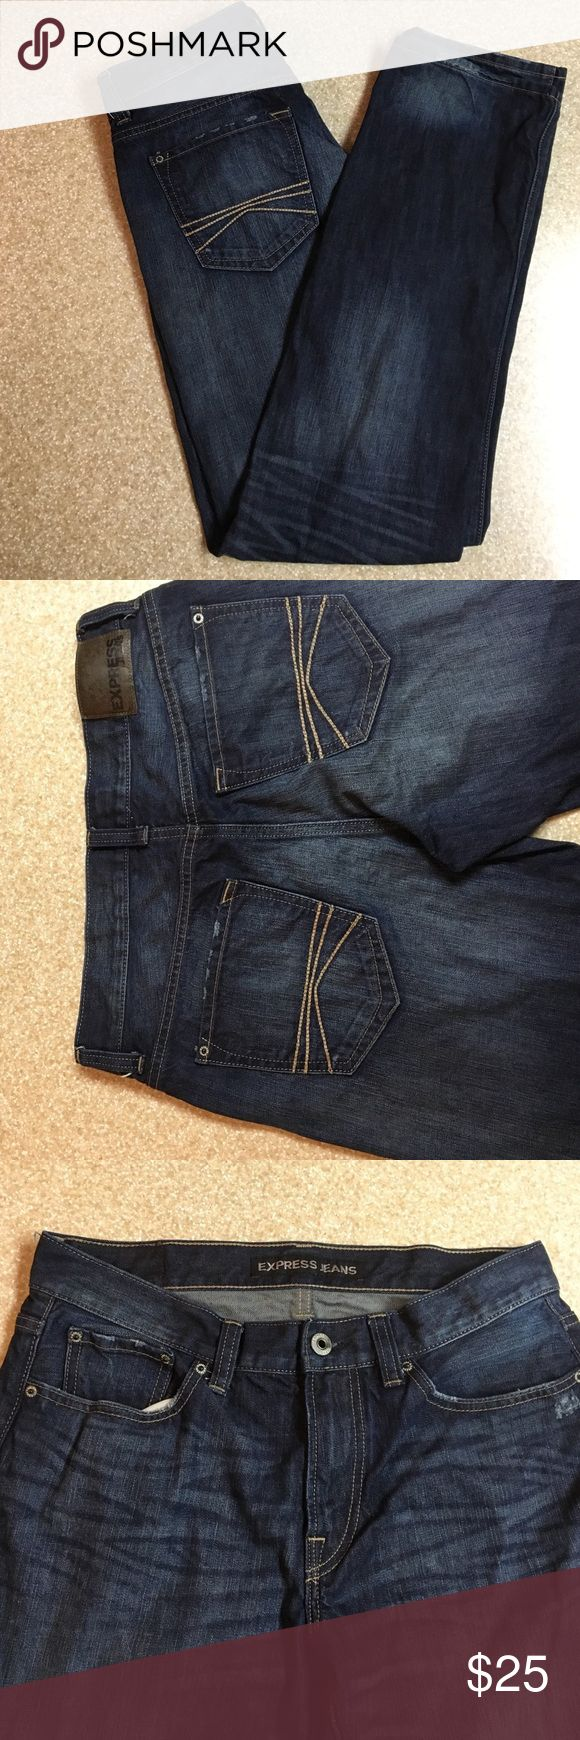 Express Men's jeans size 32x34 These are a pair of men's express jeans in the size 32x34 they are the style Blake loose fit straight leg. They have no visible wear and tear. Worn only a few times. The style is a dark wash with decorative distressing along the jeans Express Jeans Straight